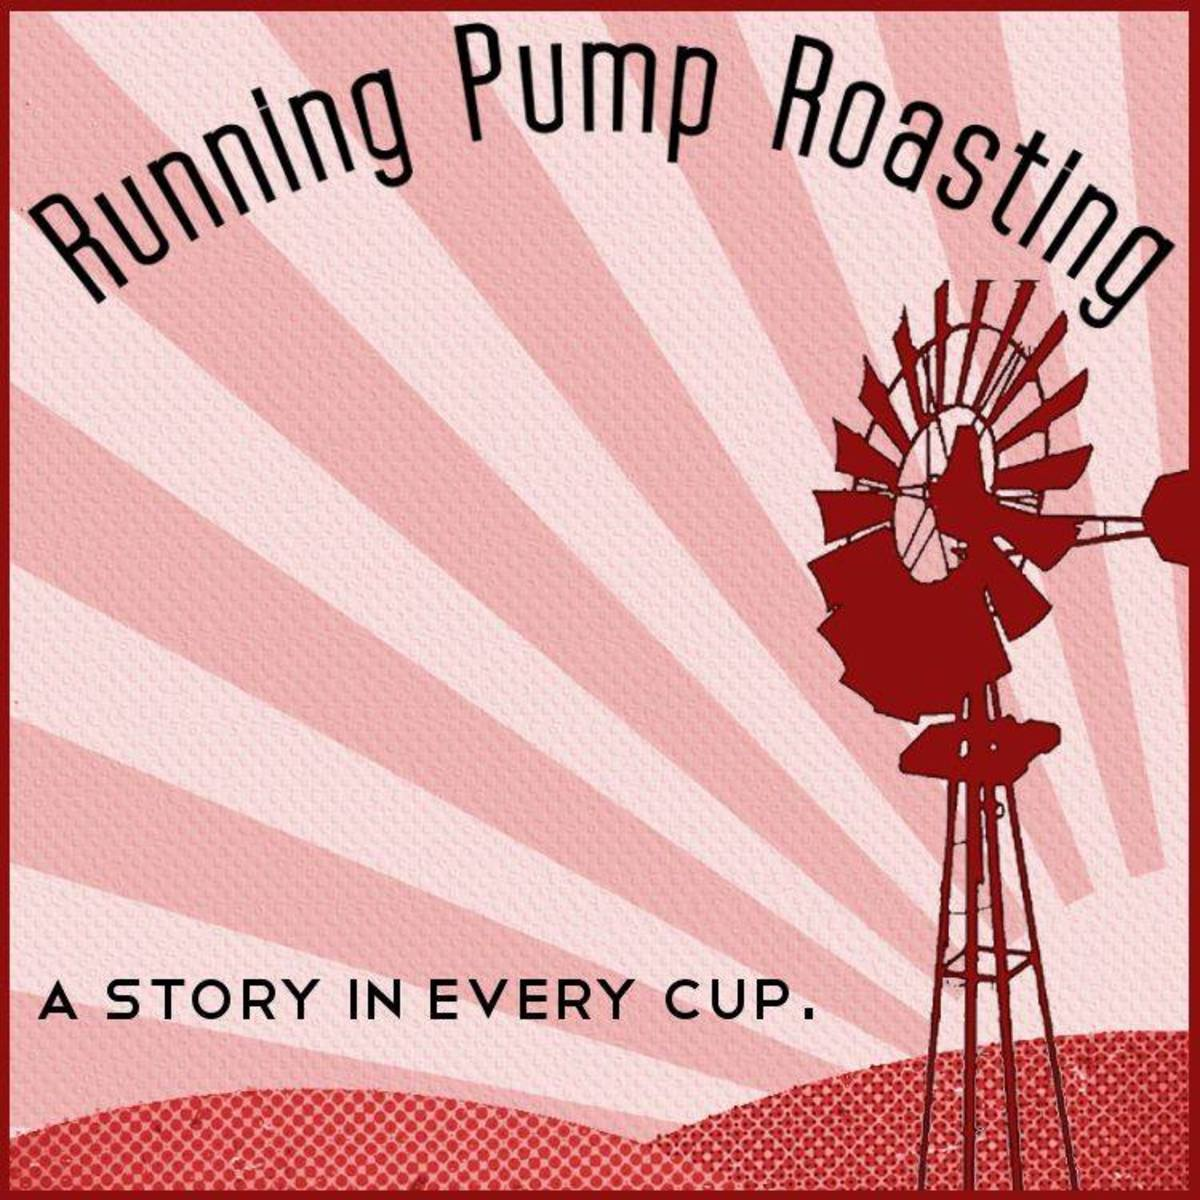 Running Pump Roasting Company—A Story in Every Cup